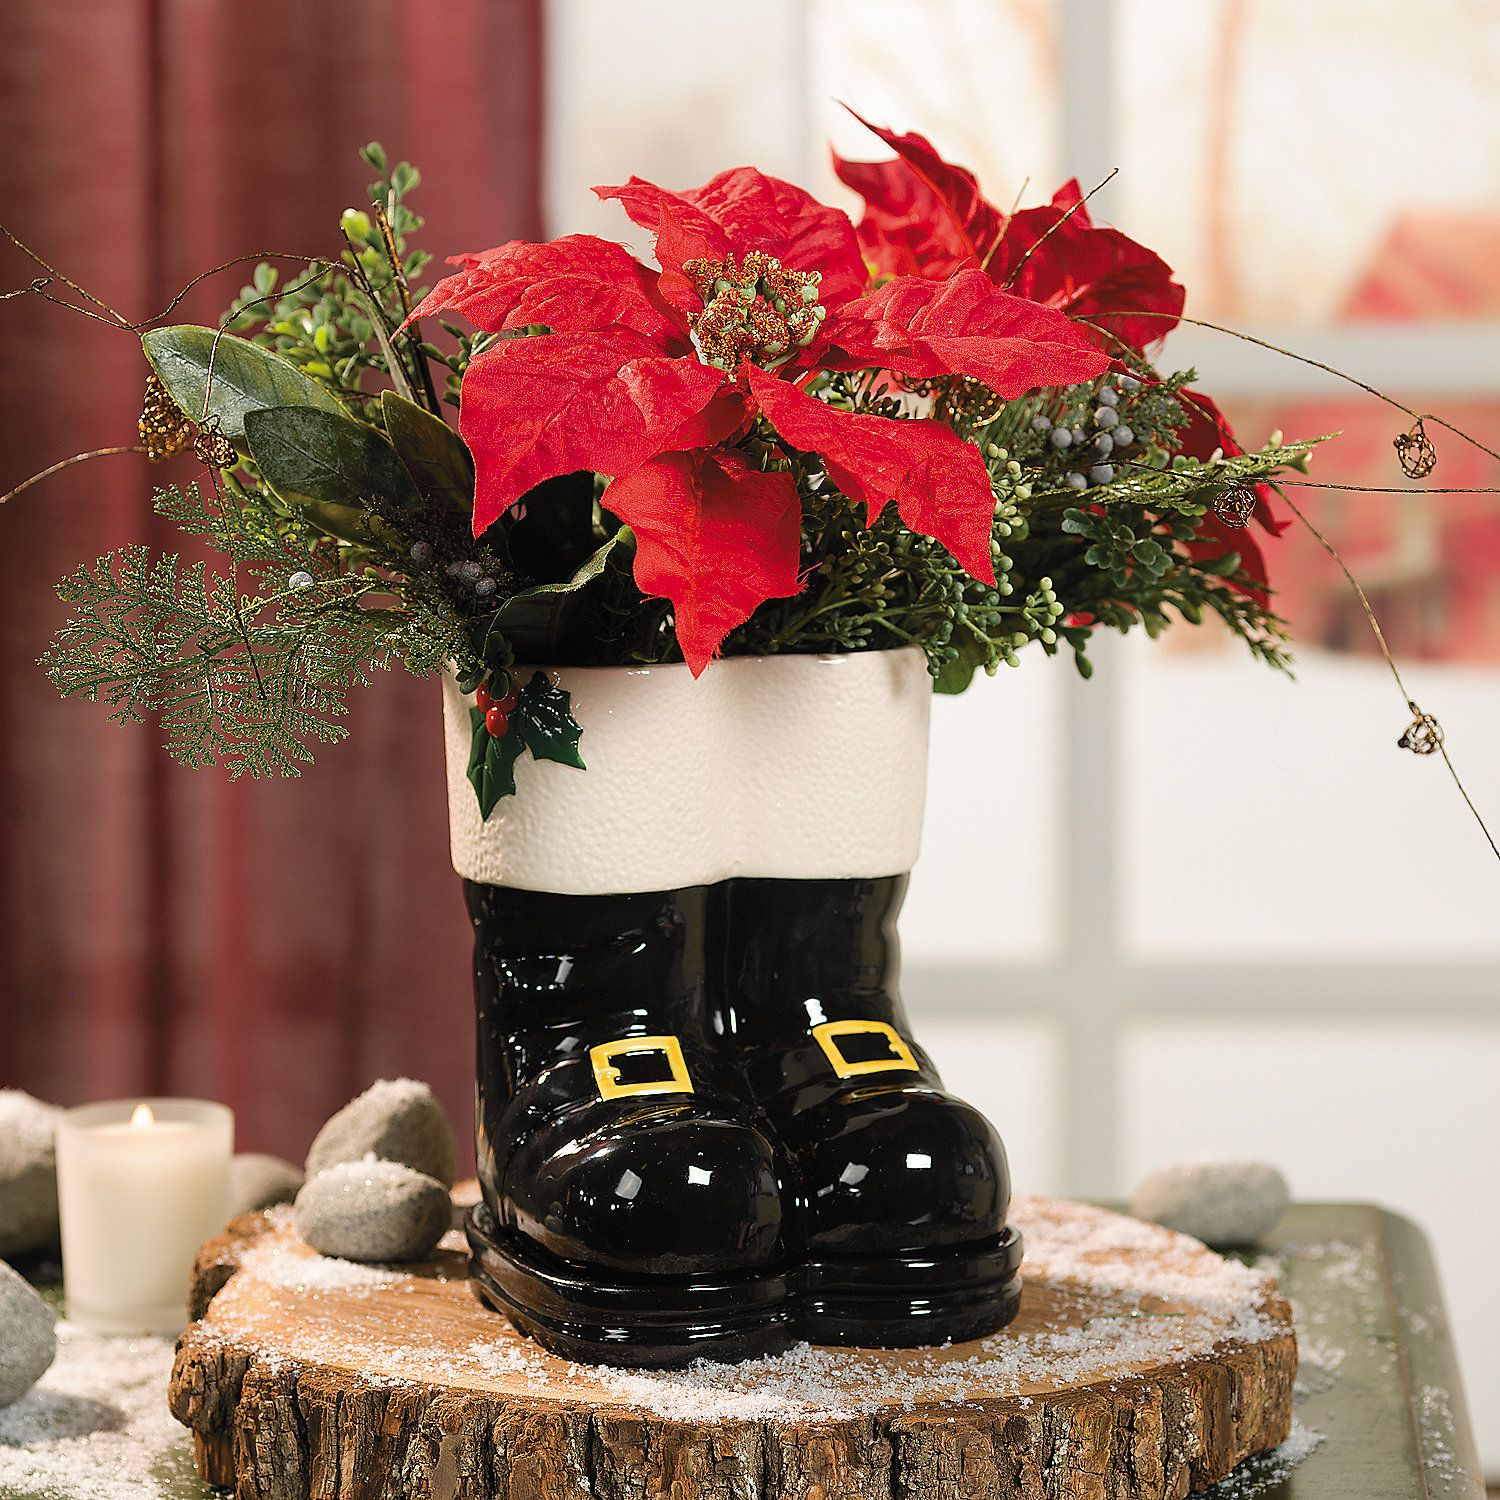 Santa Boots With Buckles Planter Terrysvillage Com Outdoor Christmas Decorations Christmas Yard Decorations Christmas Decorations